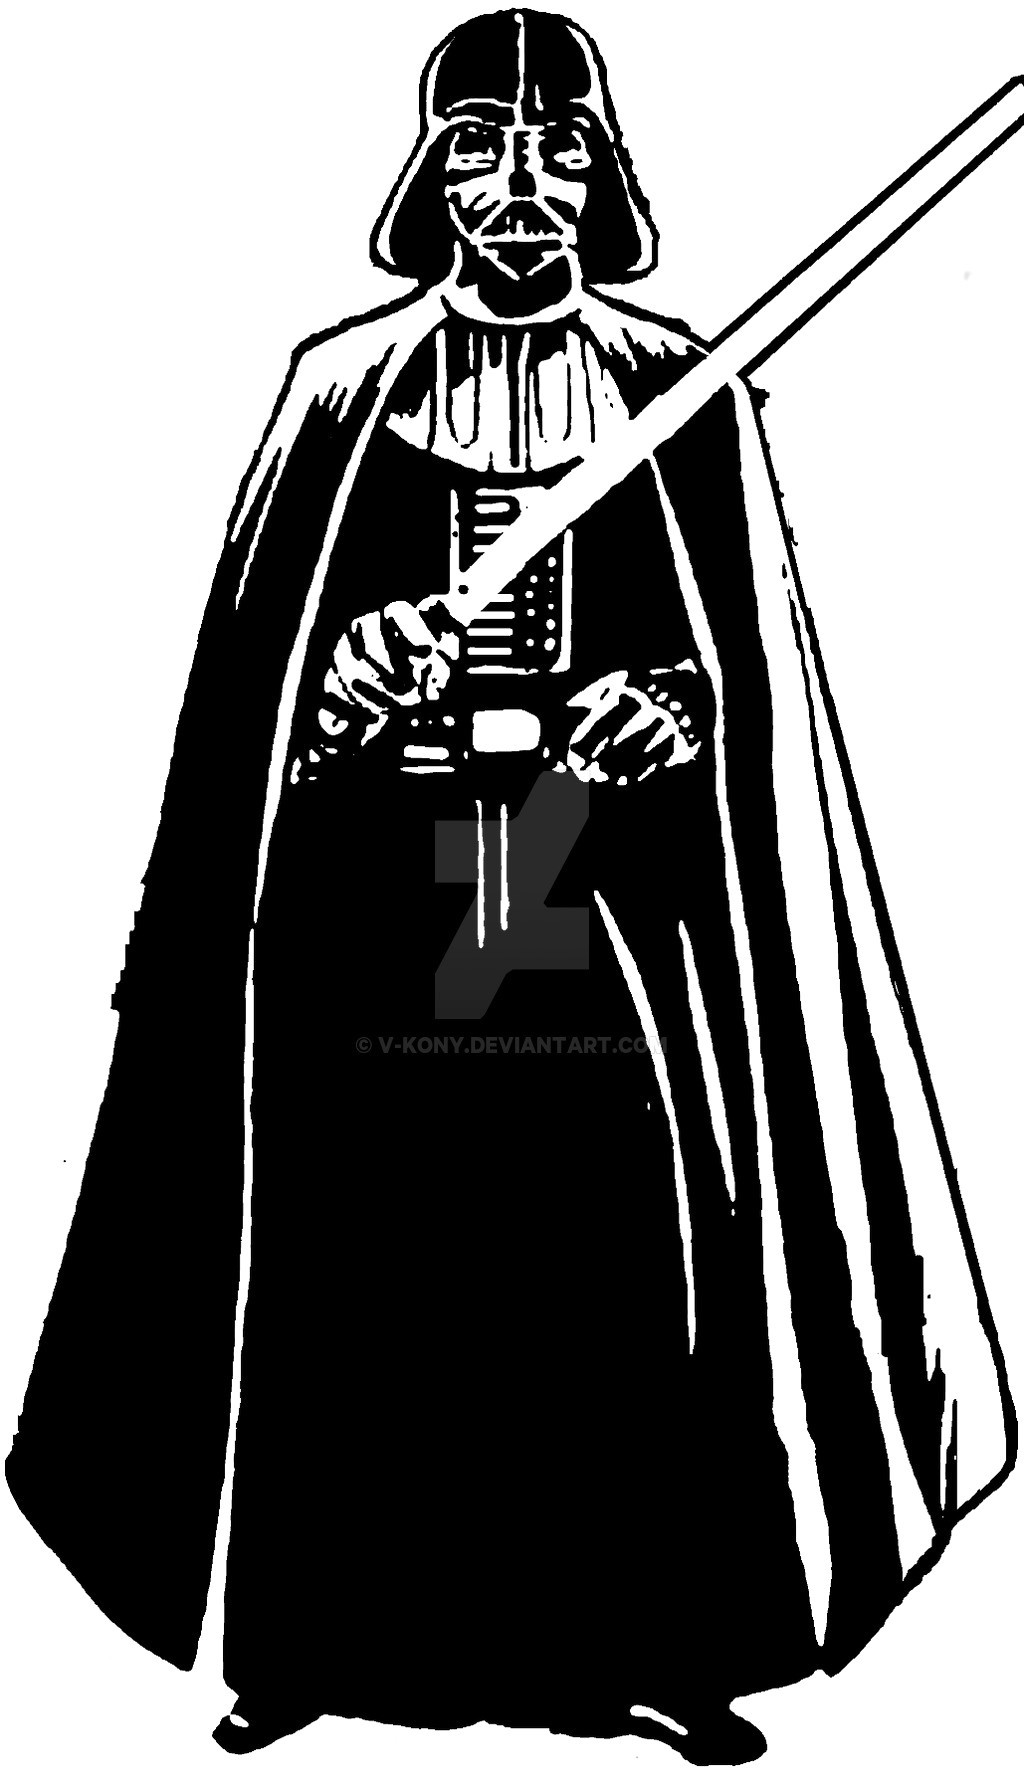 Darth vader clipart black and white » Clipart Station.